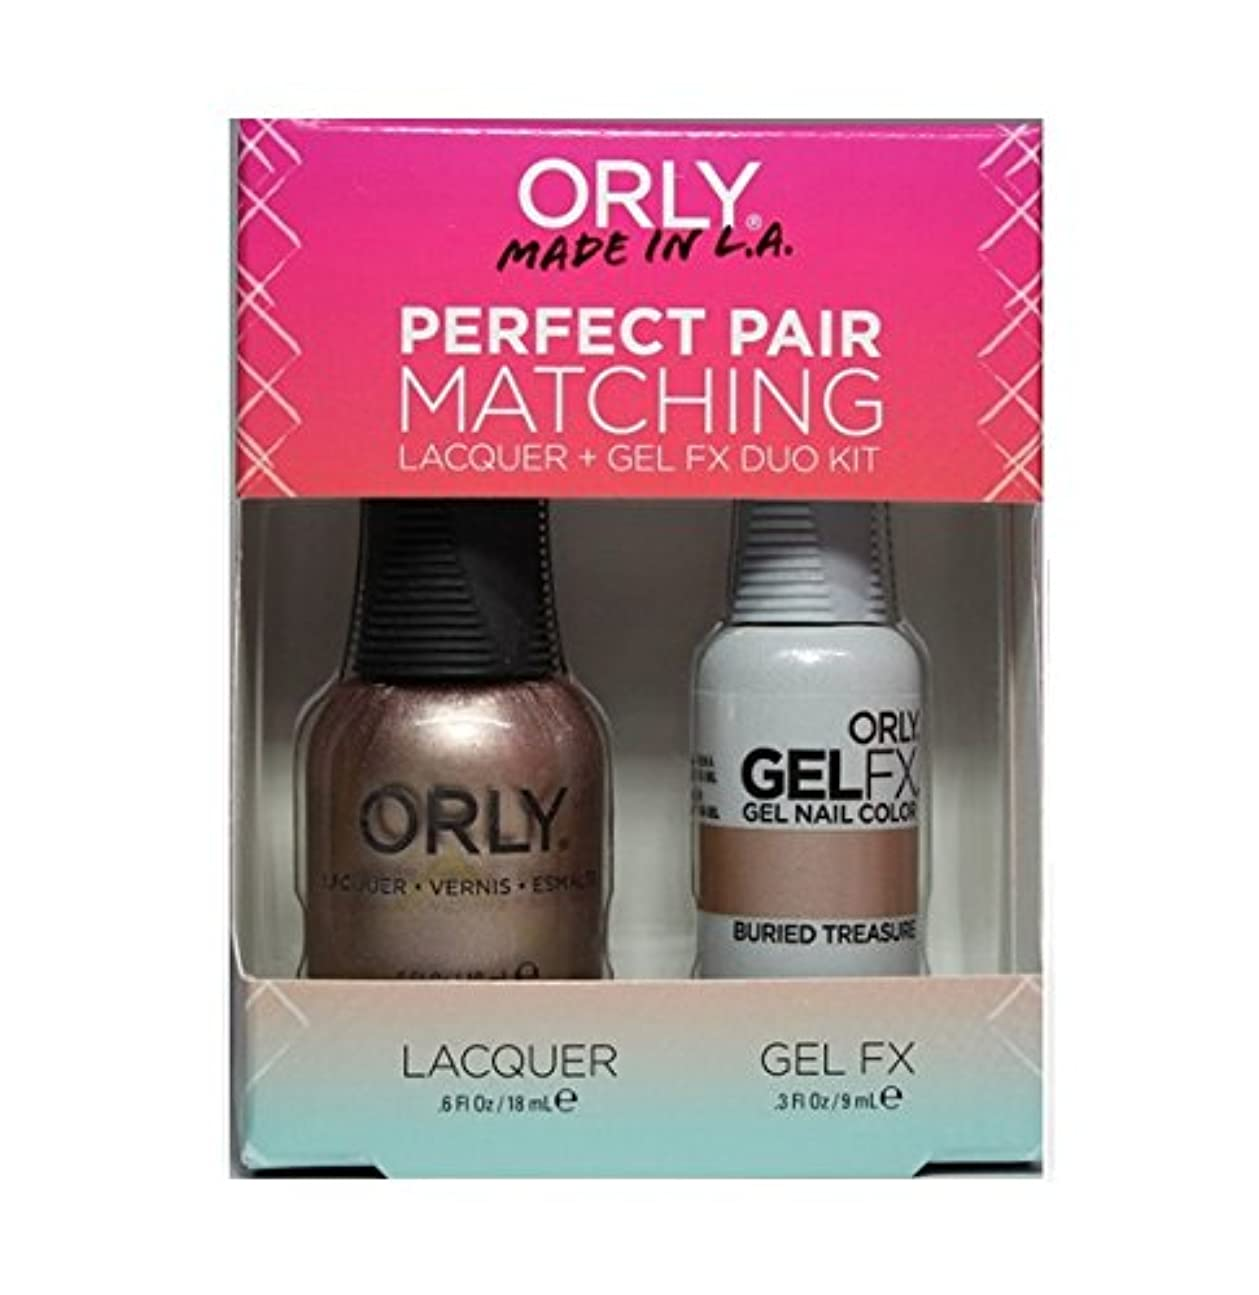 名誉解読する隔離Orly - Perfect Pair Matching Lacquer+Gel FX Kit - Buried Treasure - 0.6 oz / 0.3 oz